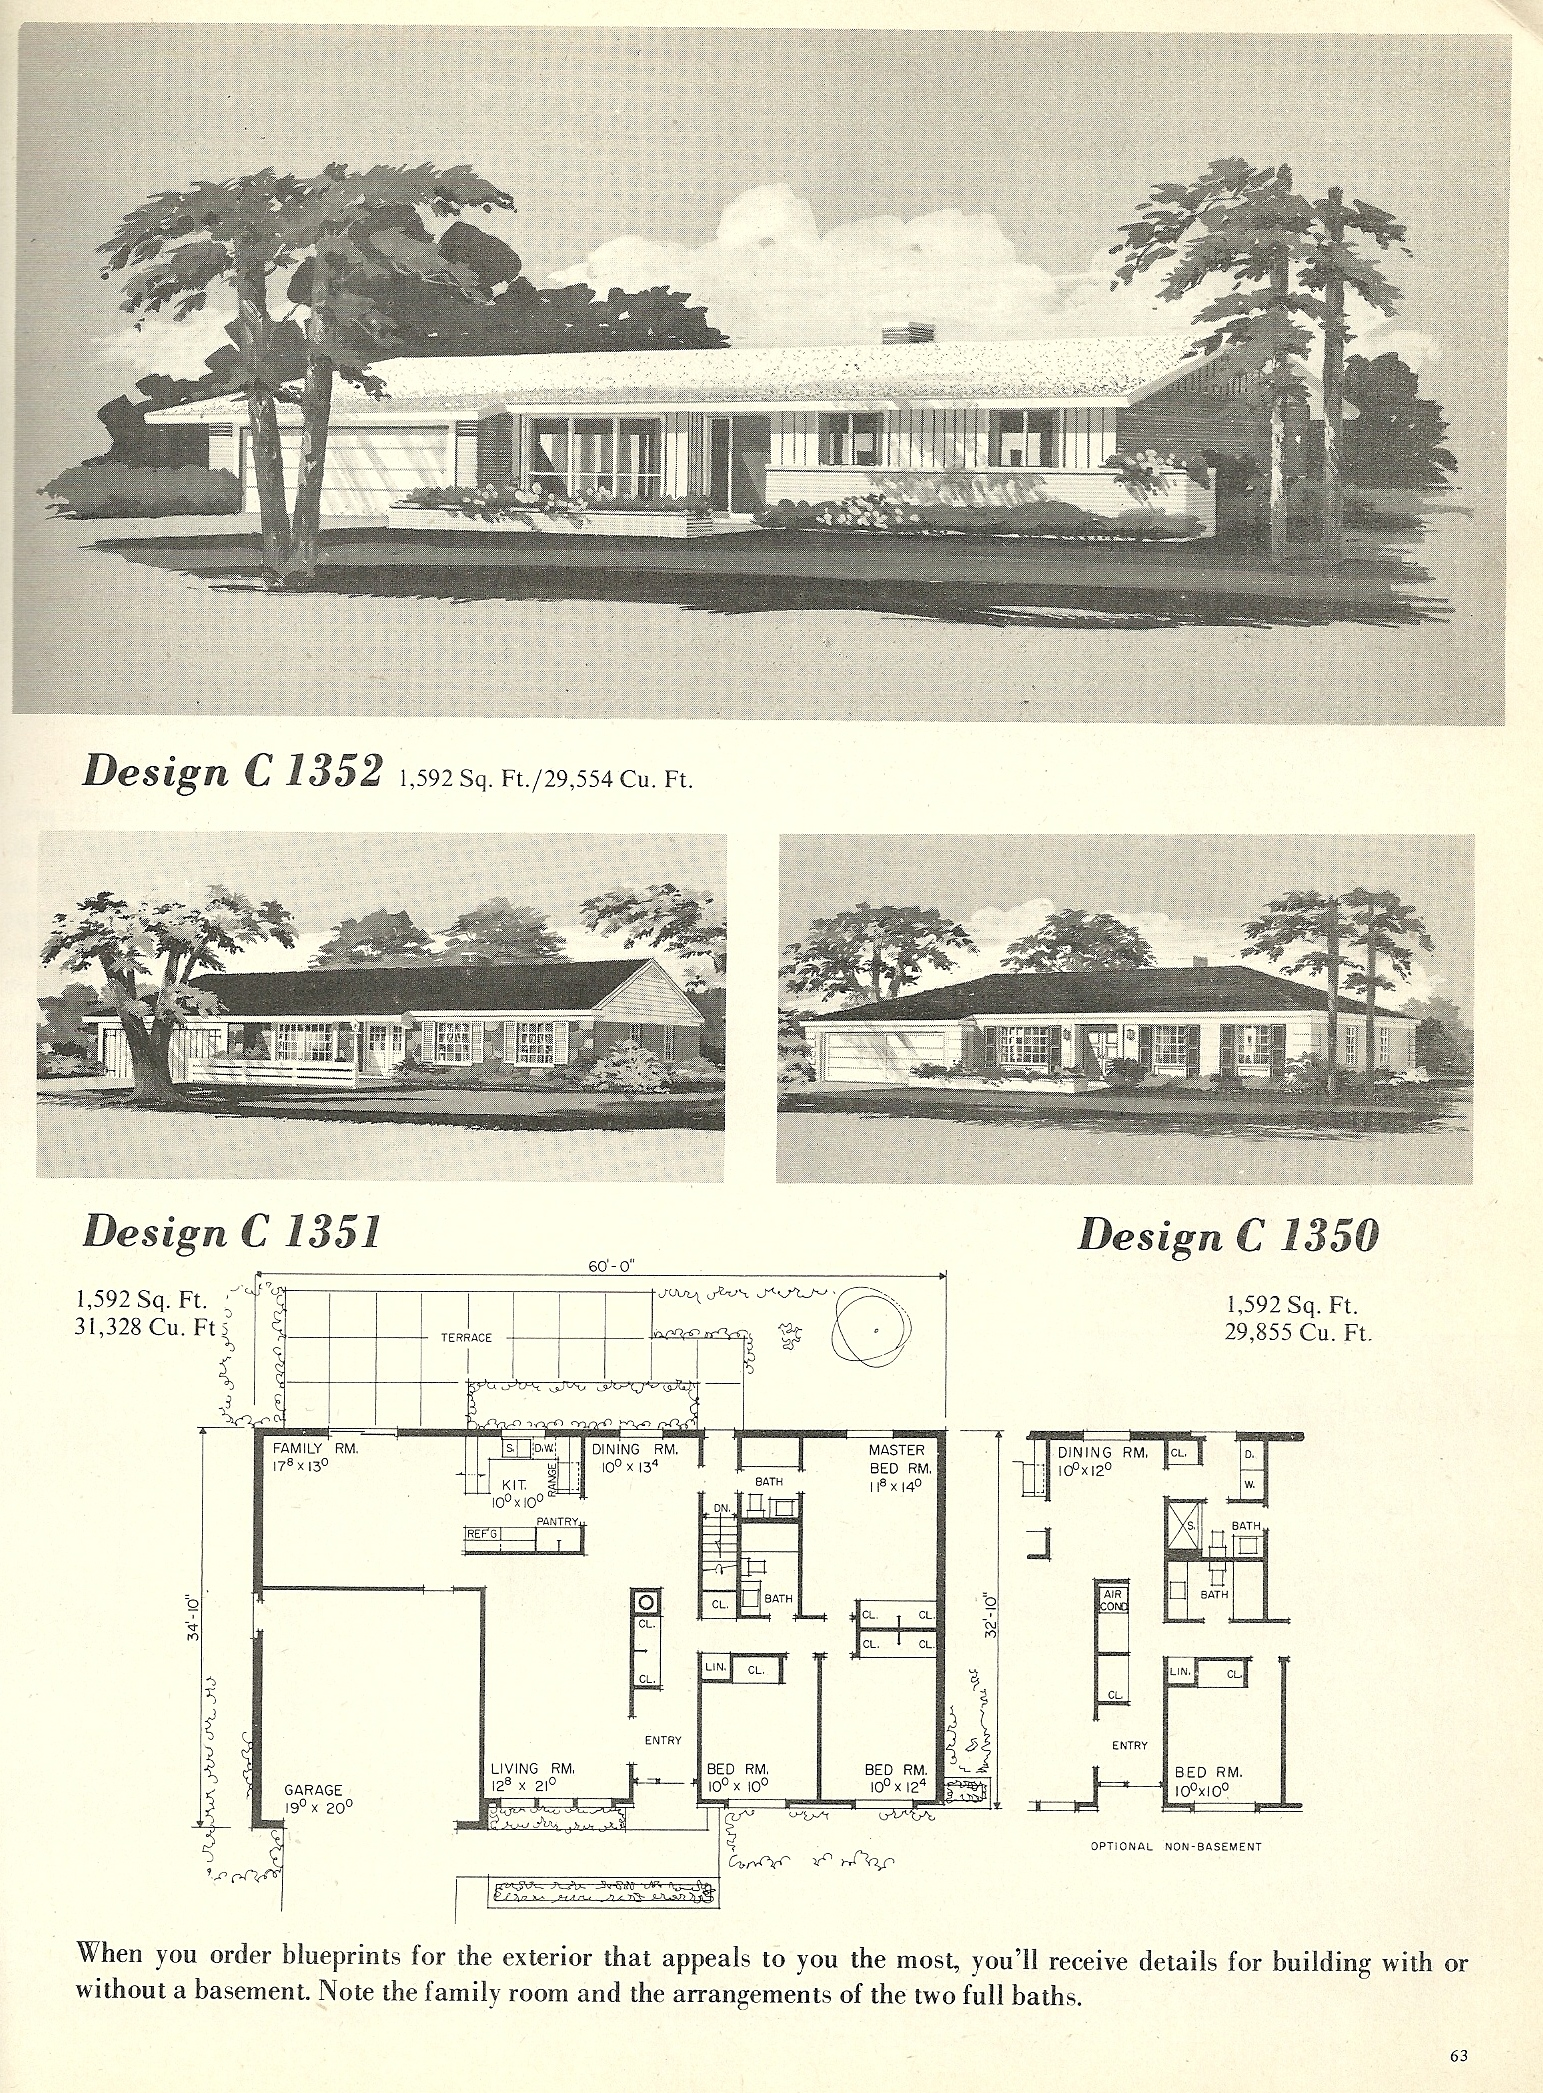 Vintage house plans 1352 antique alter ego for Vintage floor plans